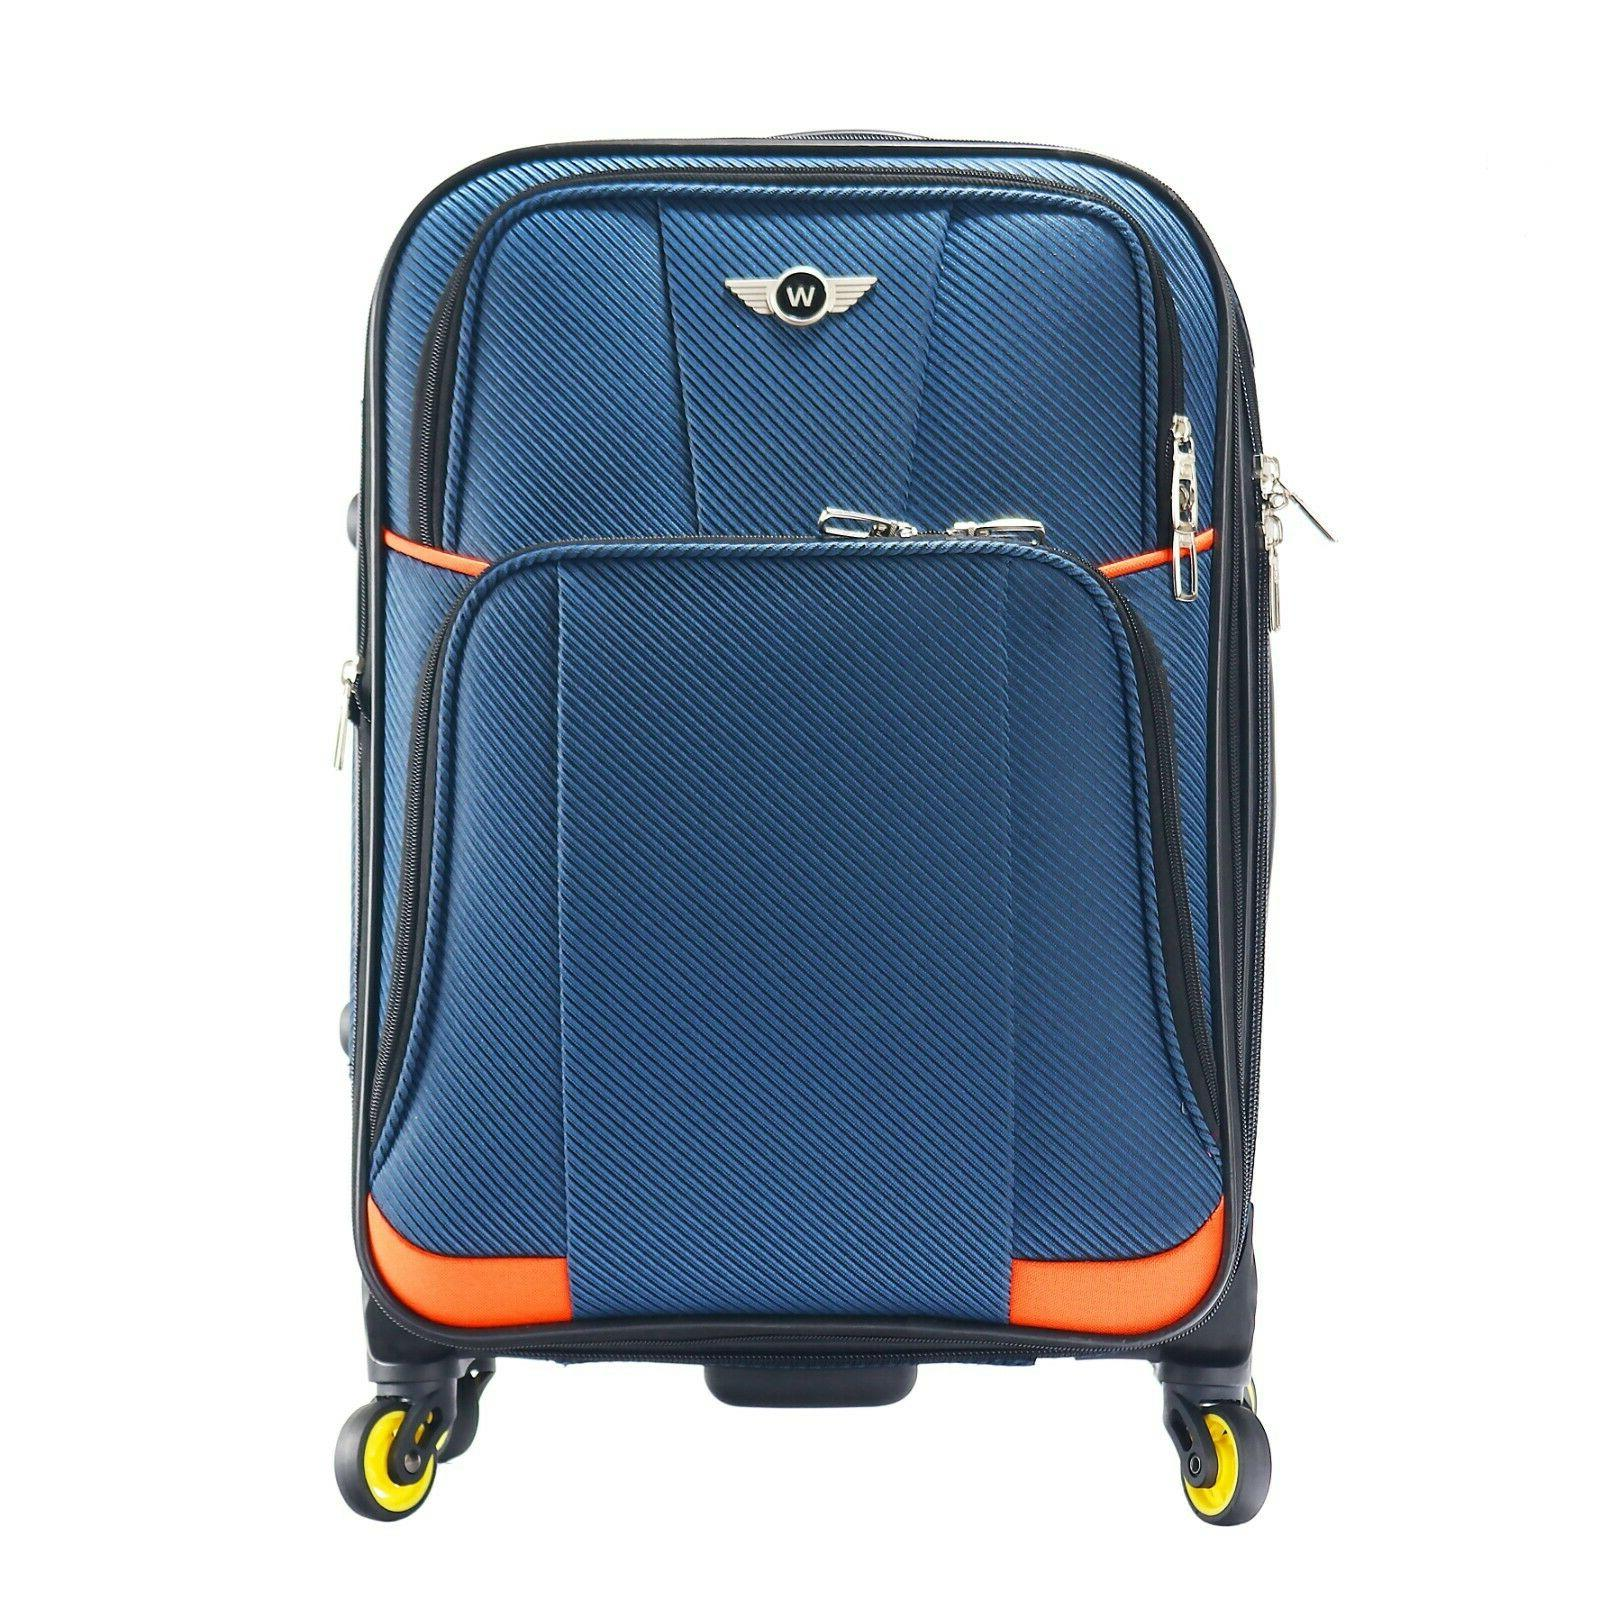 Carry on 22x14x9 Travel Lightweight Expandable